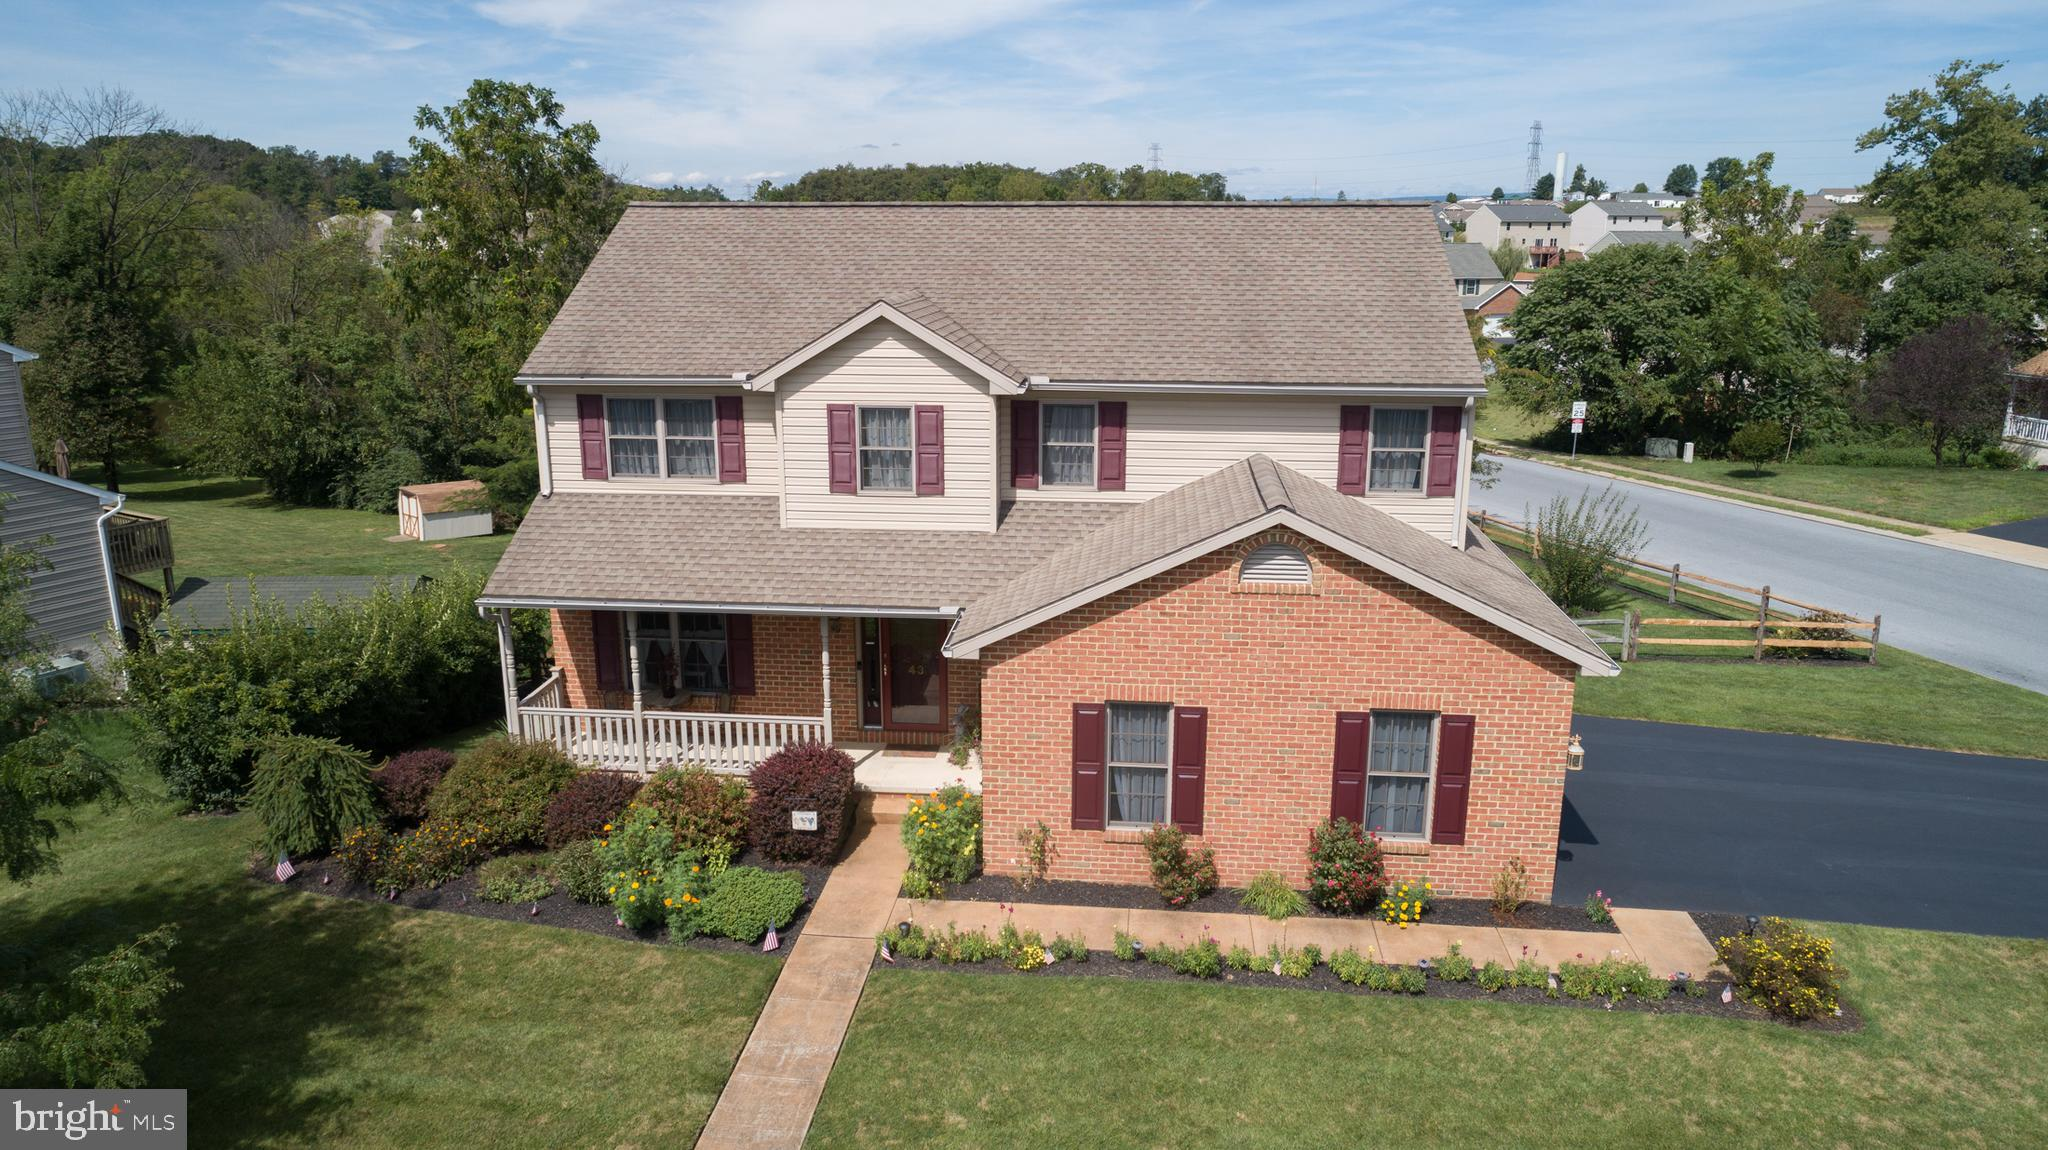 43 FIREFLY DRIVE, MYERSTOWN, PA 17067